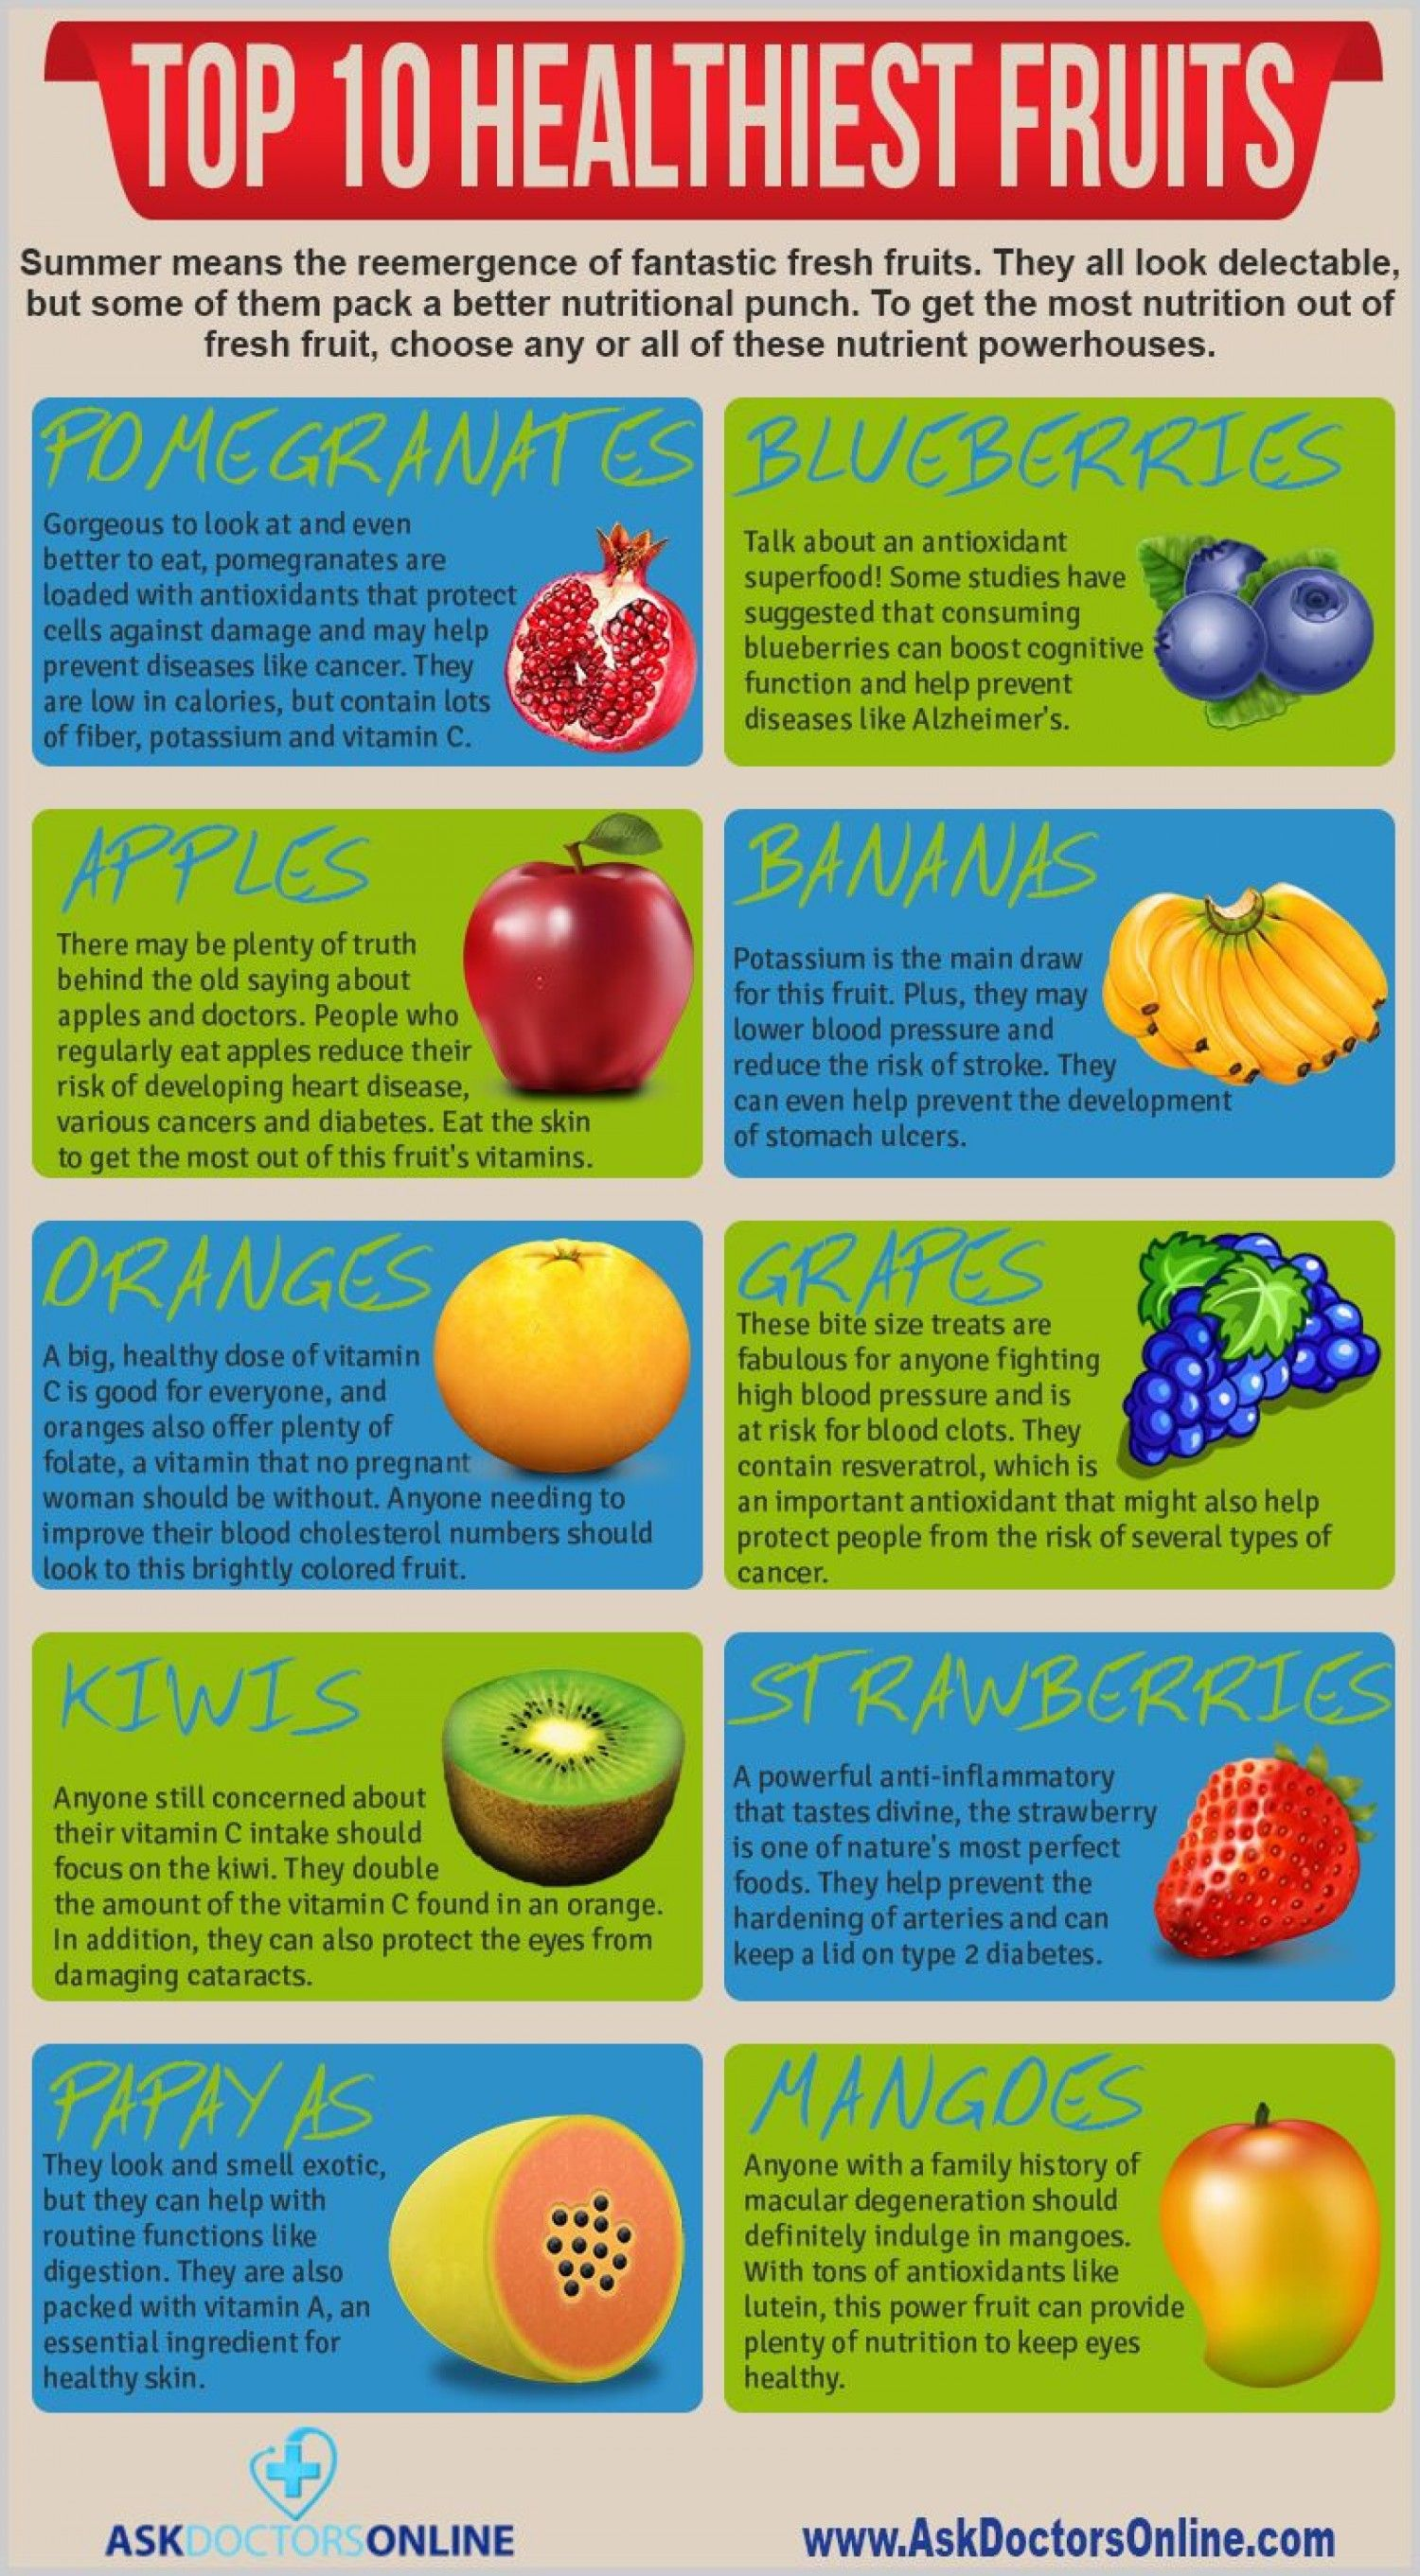 Can i buy healthy food online - These Are The Top 10 Healthiest Fruits And You Can Buy Them From Anywhere